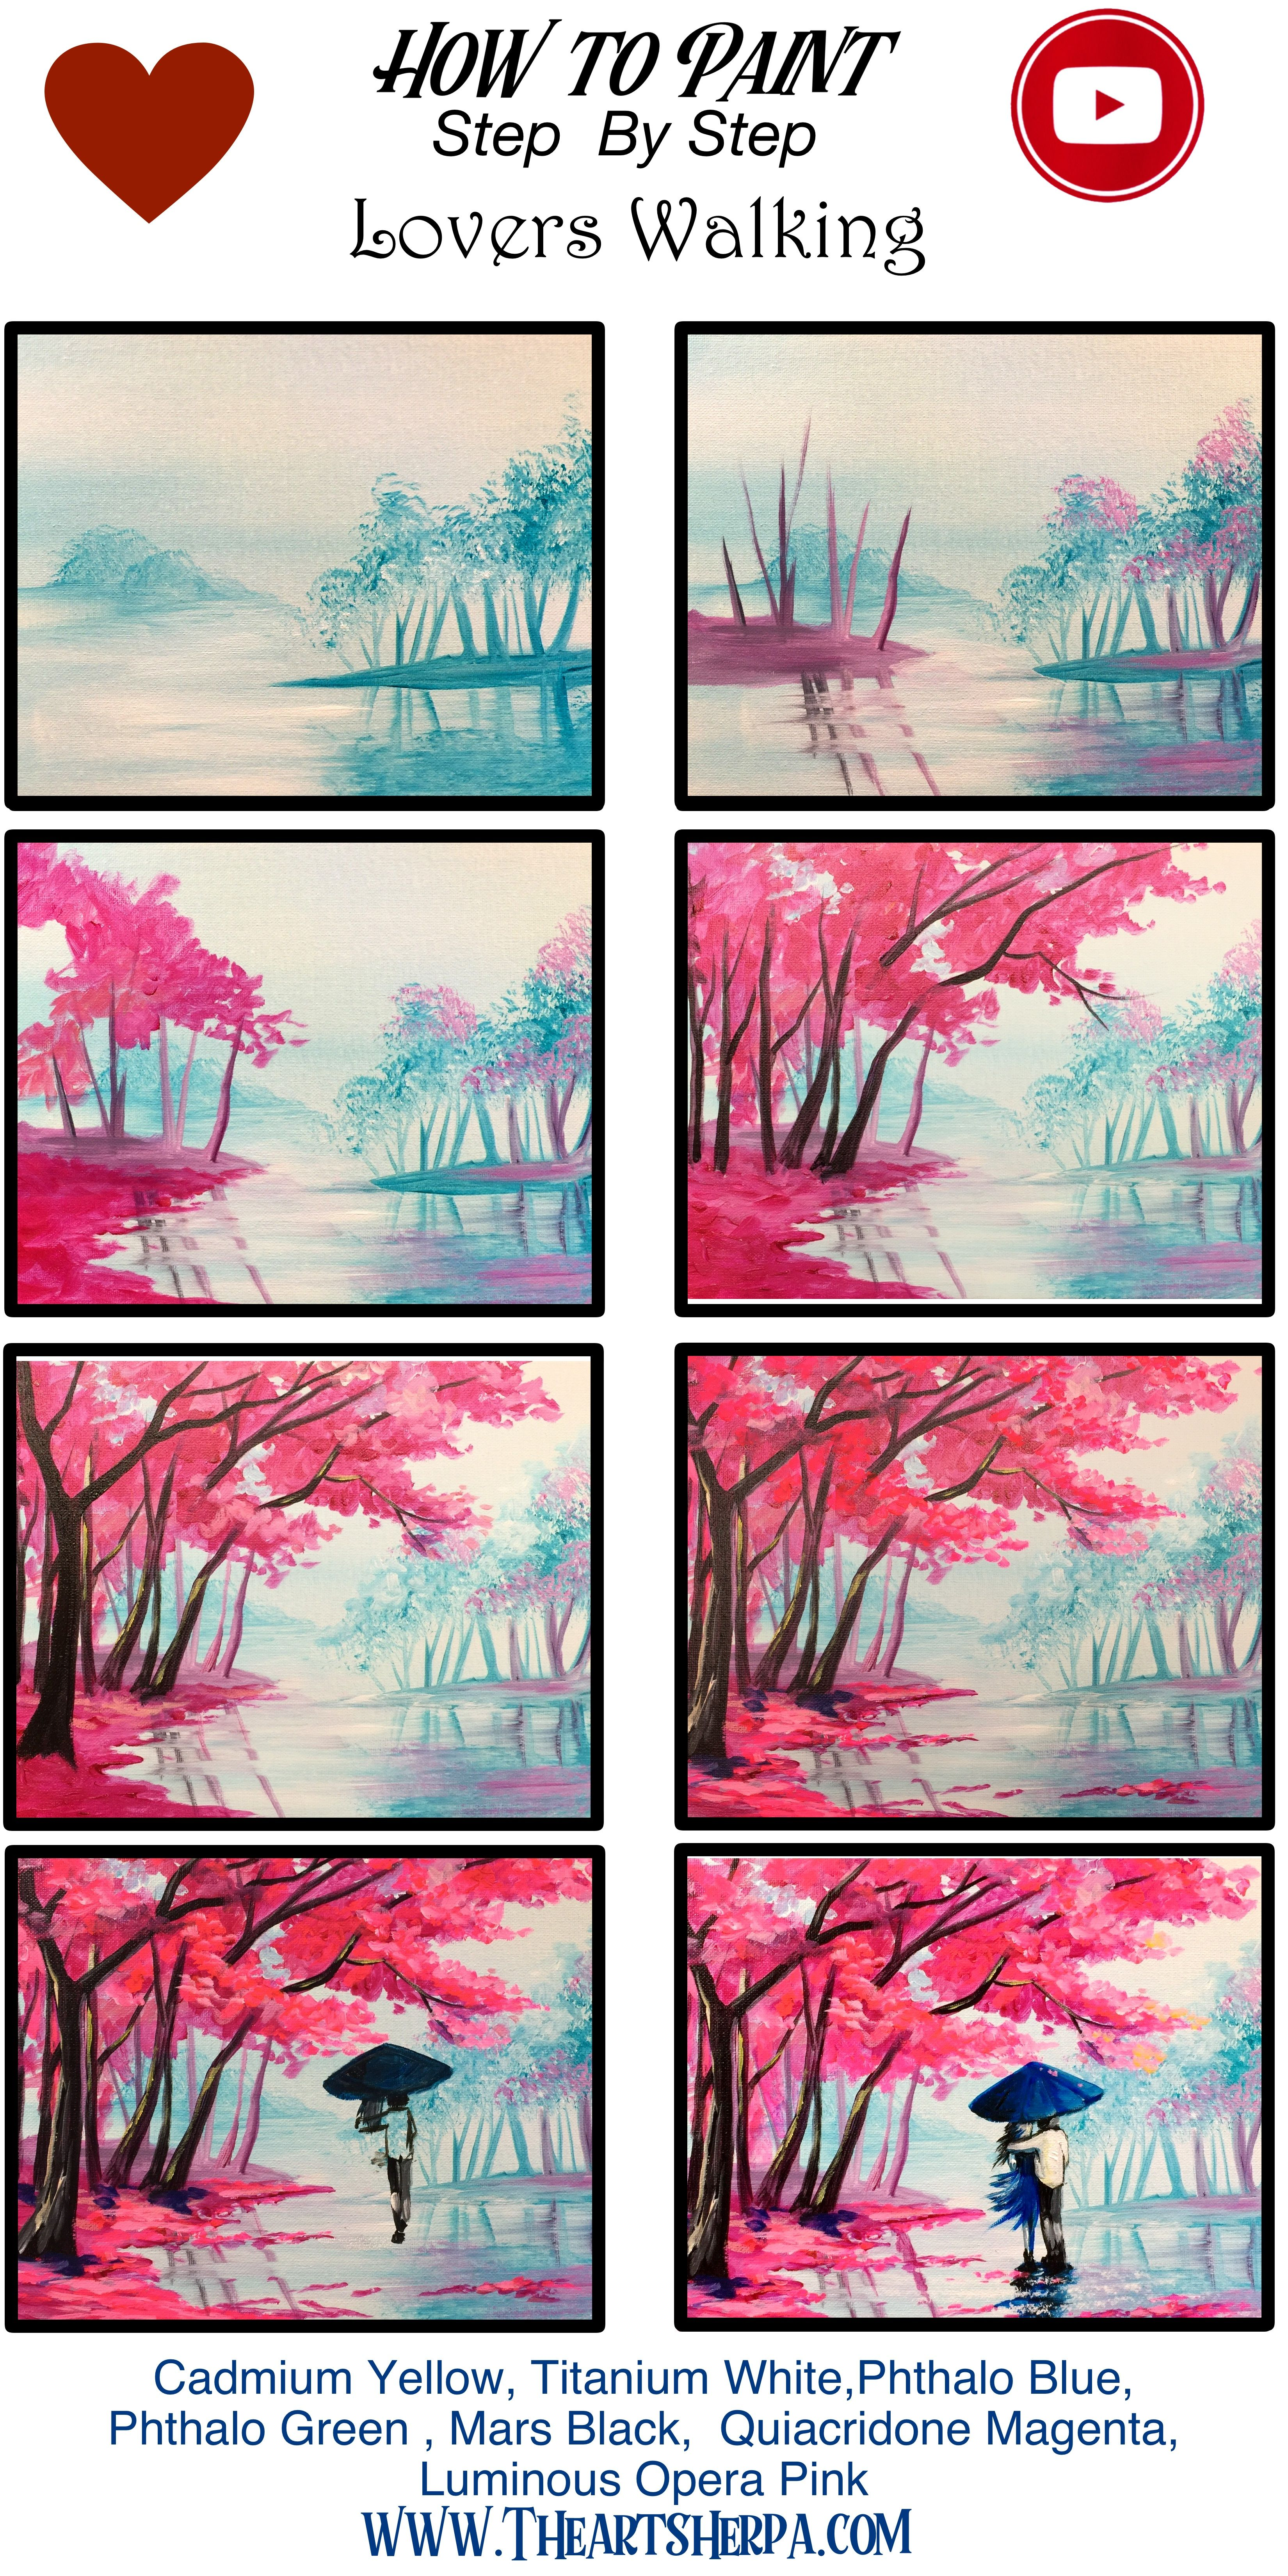 Learn To Paint A Couple Under Cherry Trees Walking The The Rain